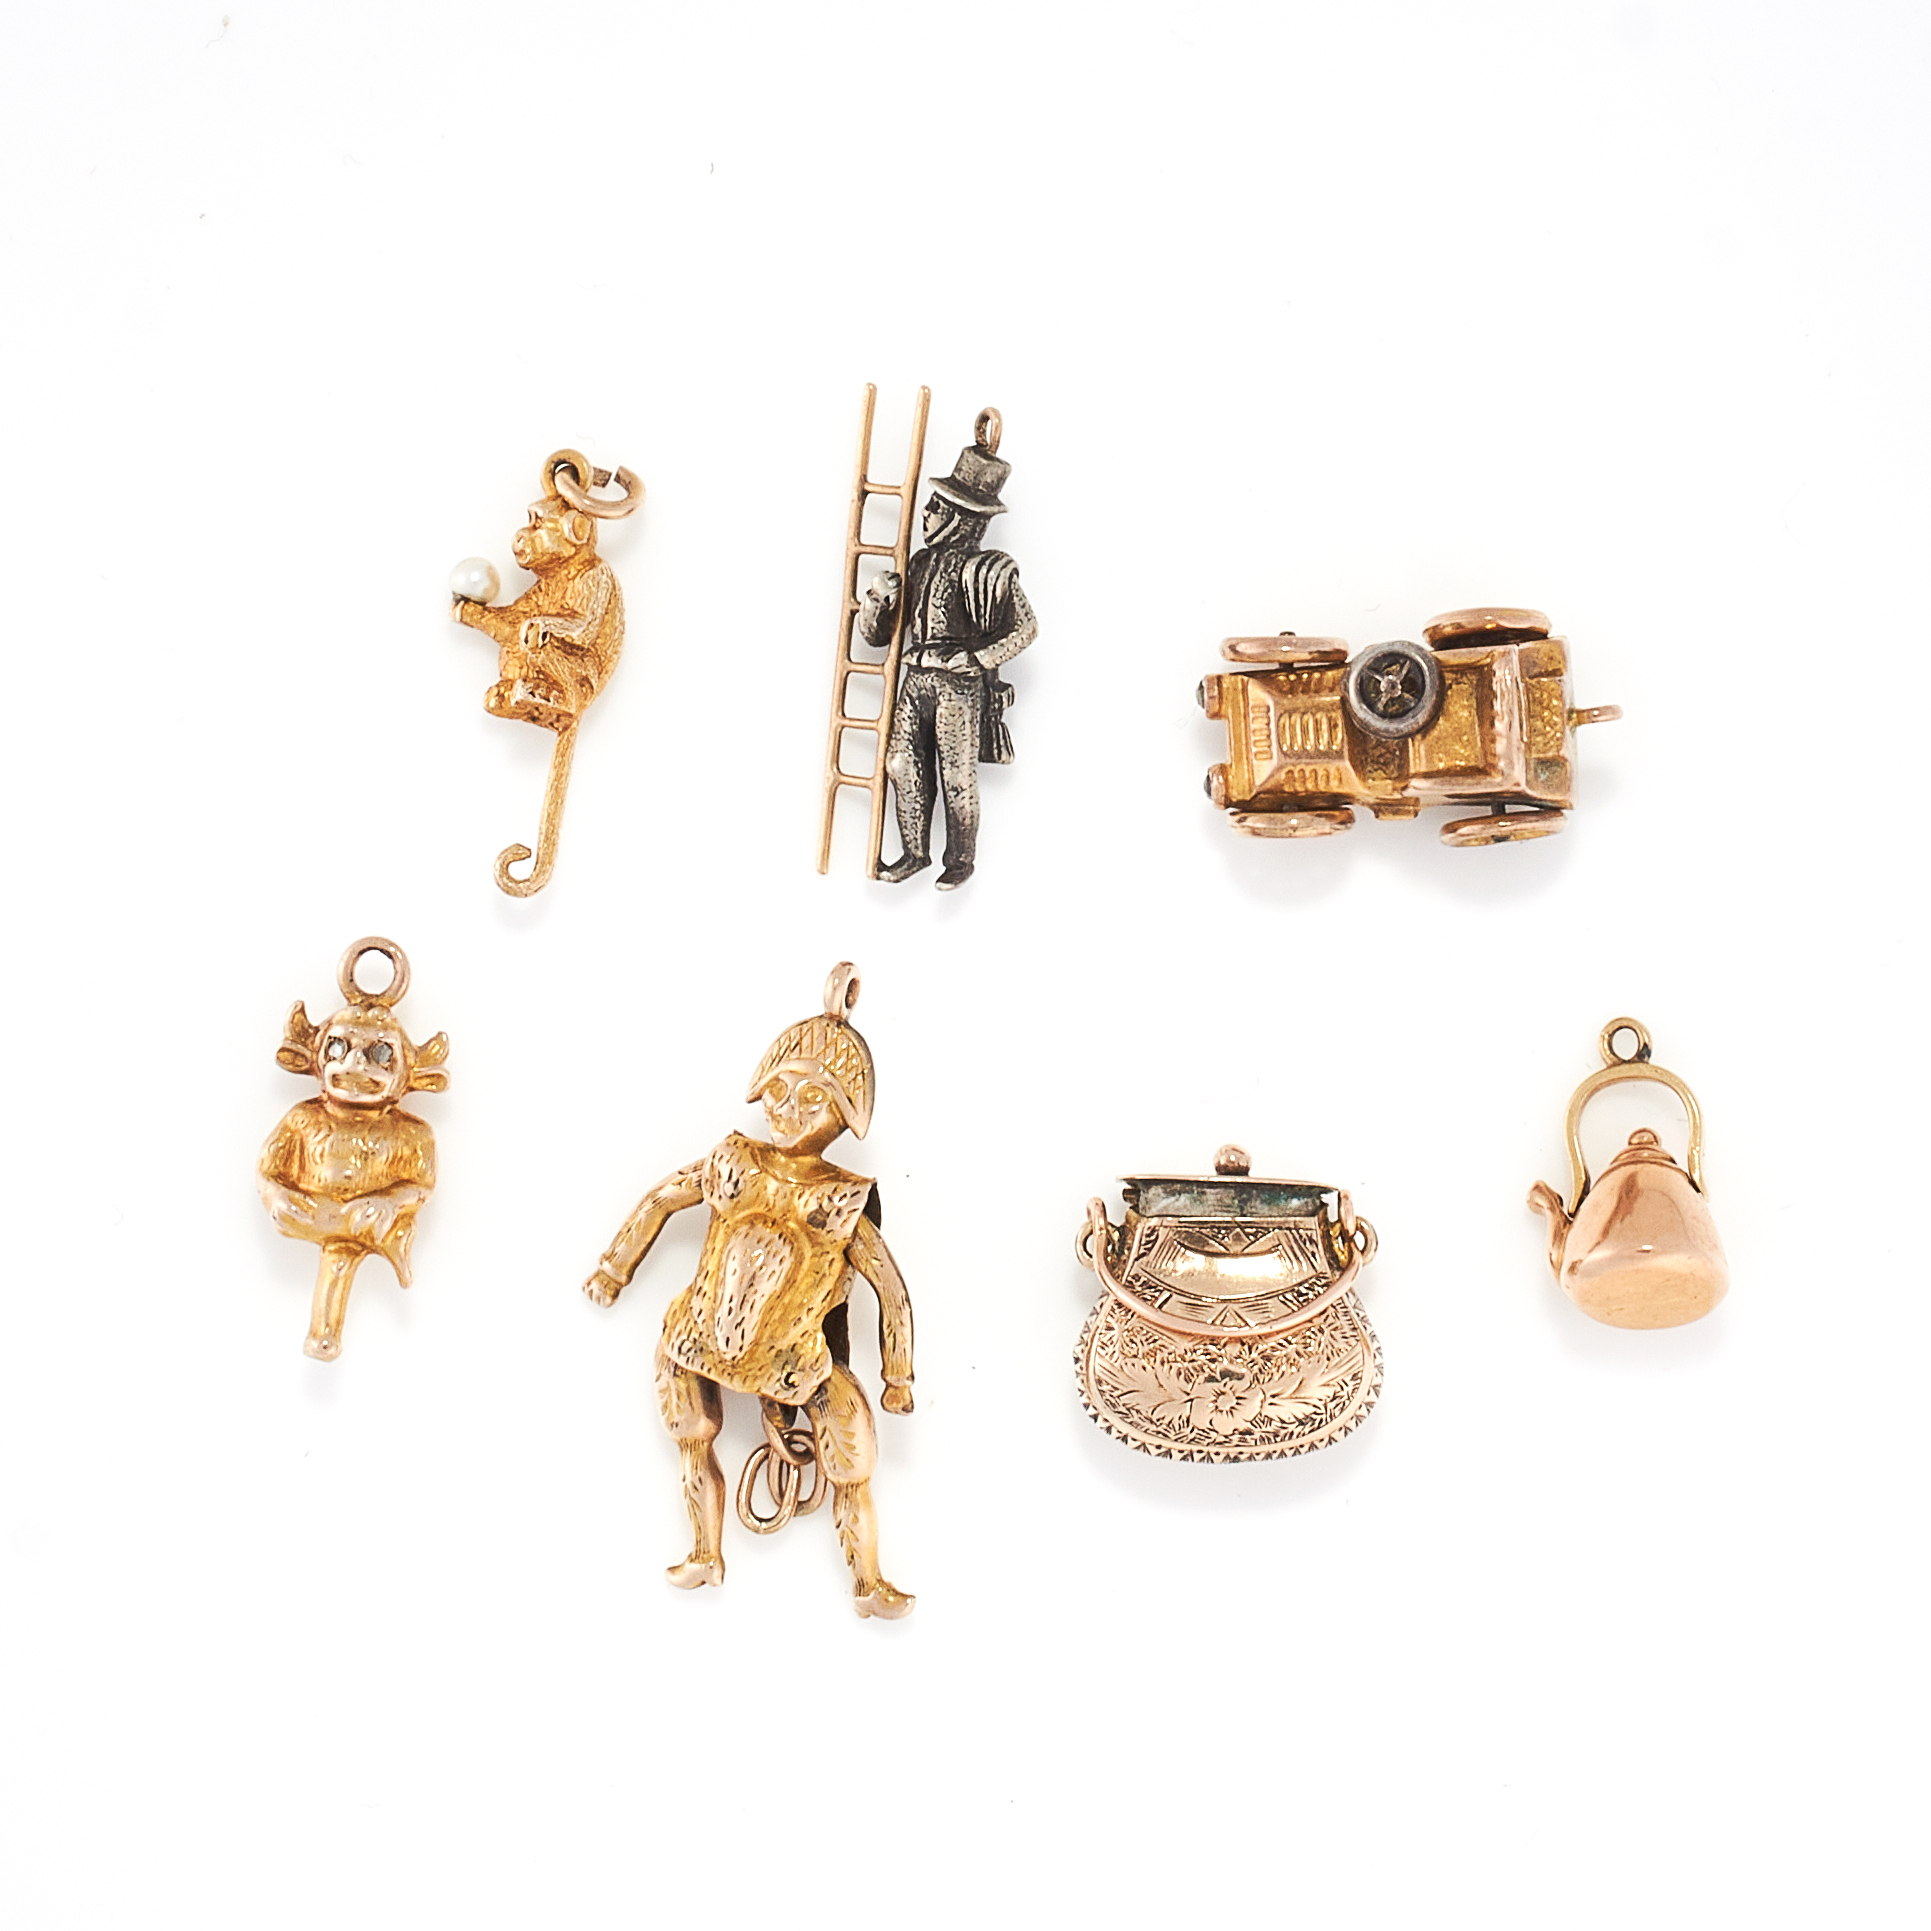 A MIXED LOT OF CHARMS some in yellow gold, comprising of two monkey charms, a tea pot charm, a purse